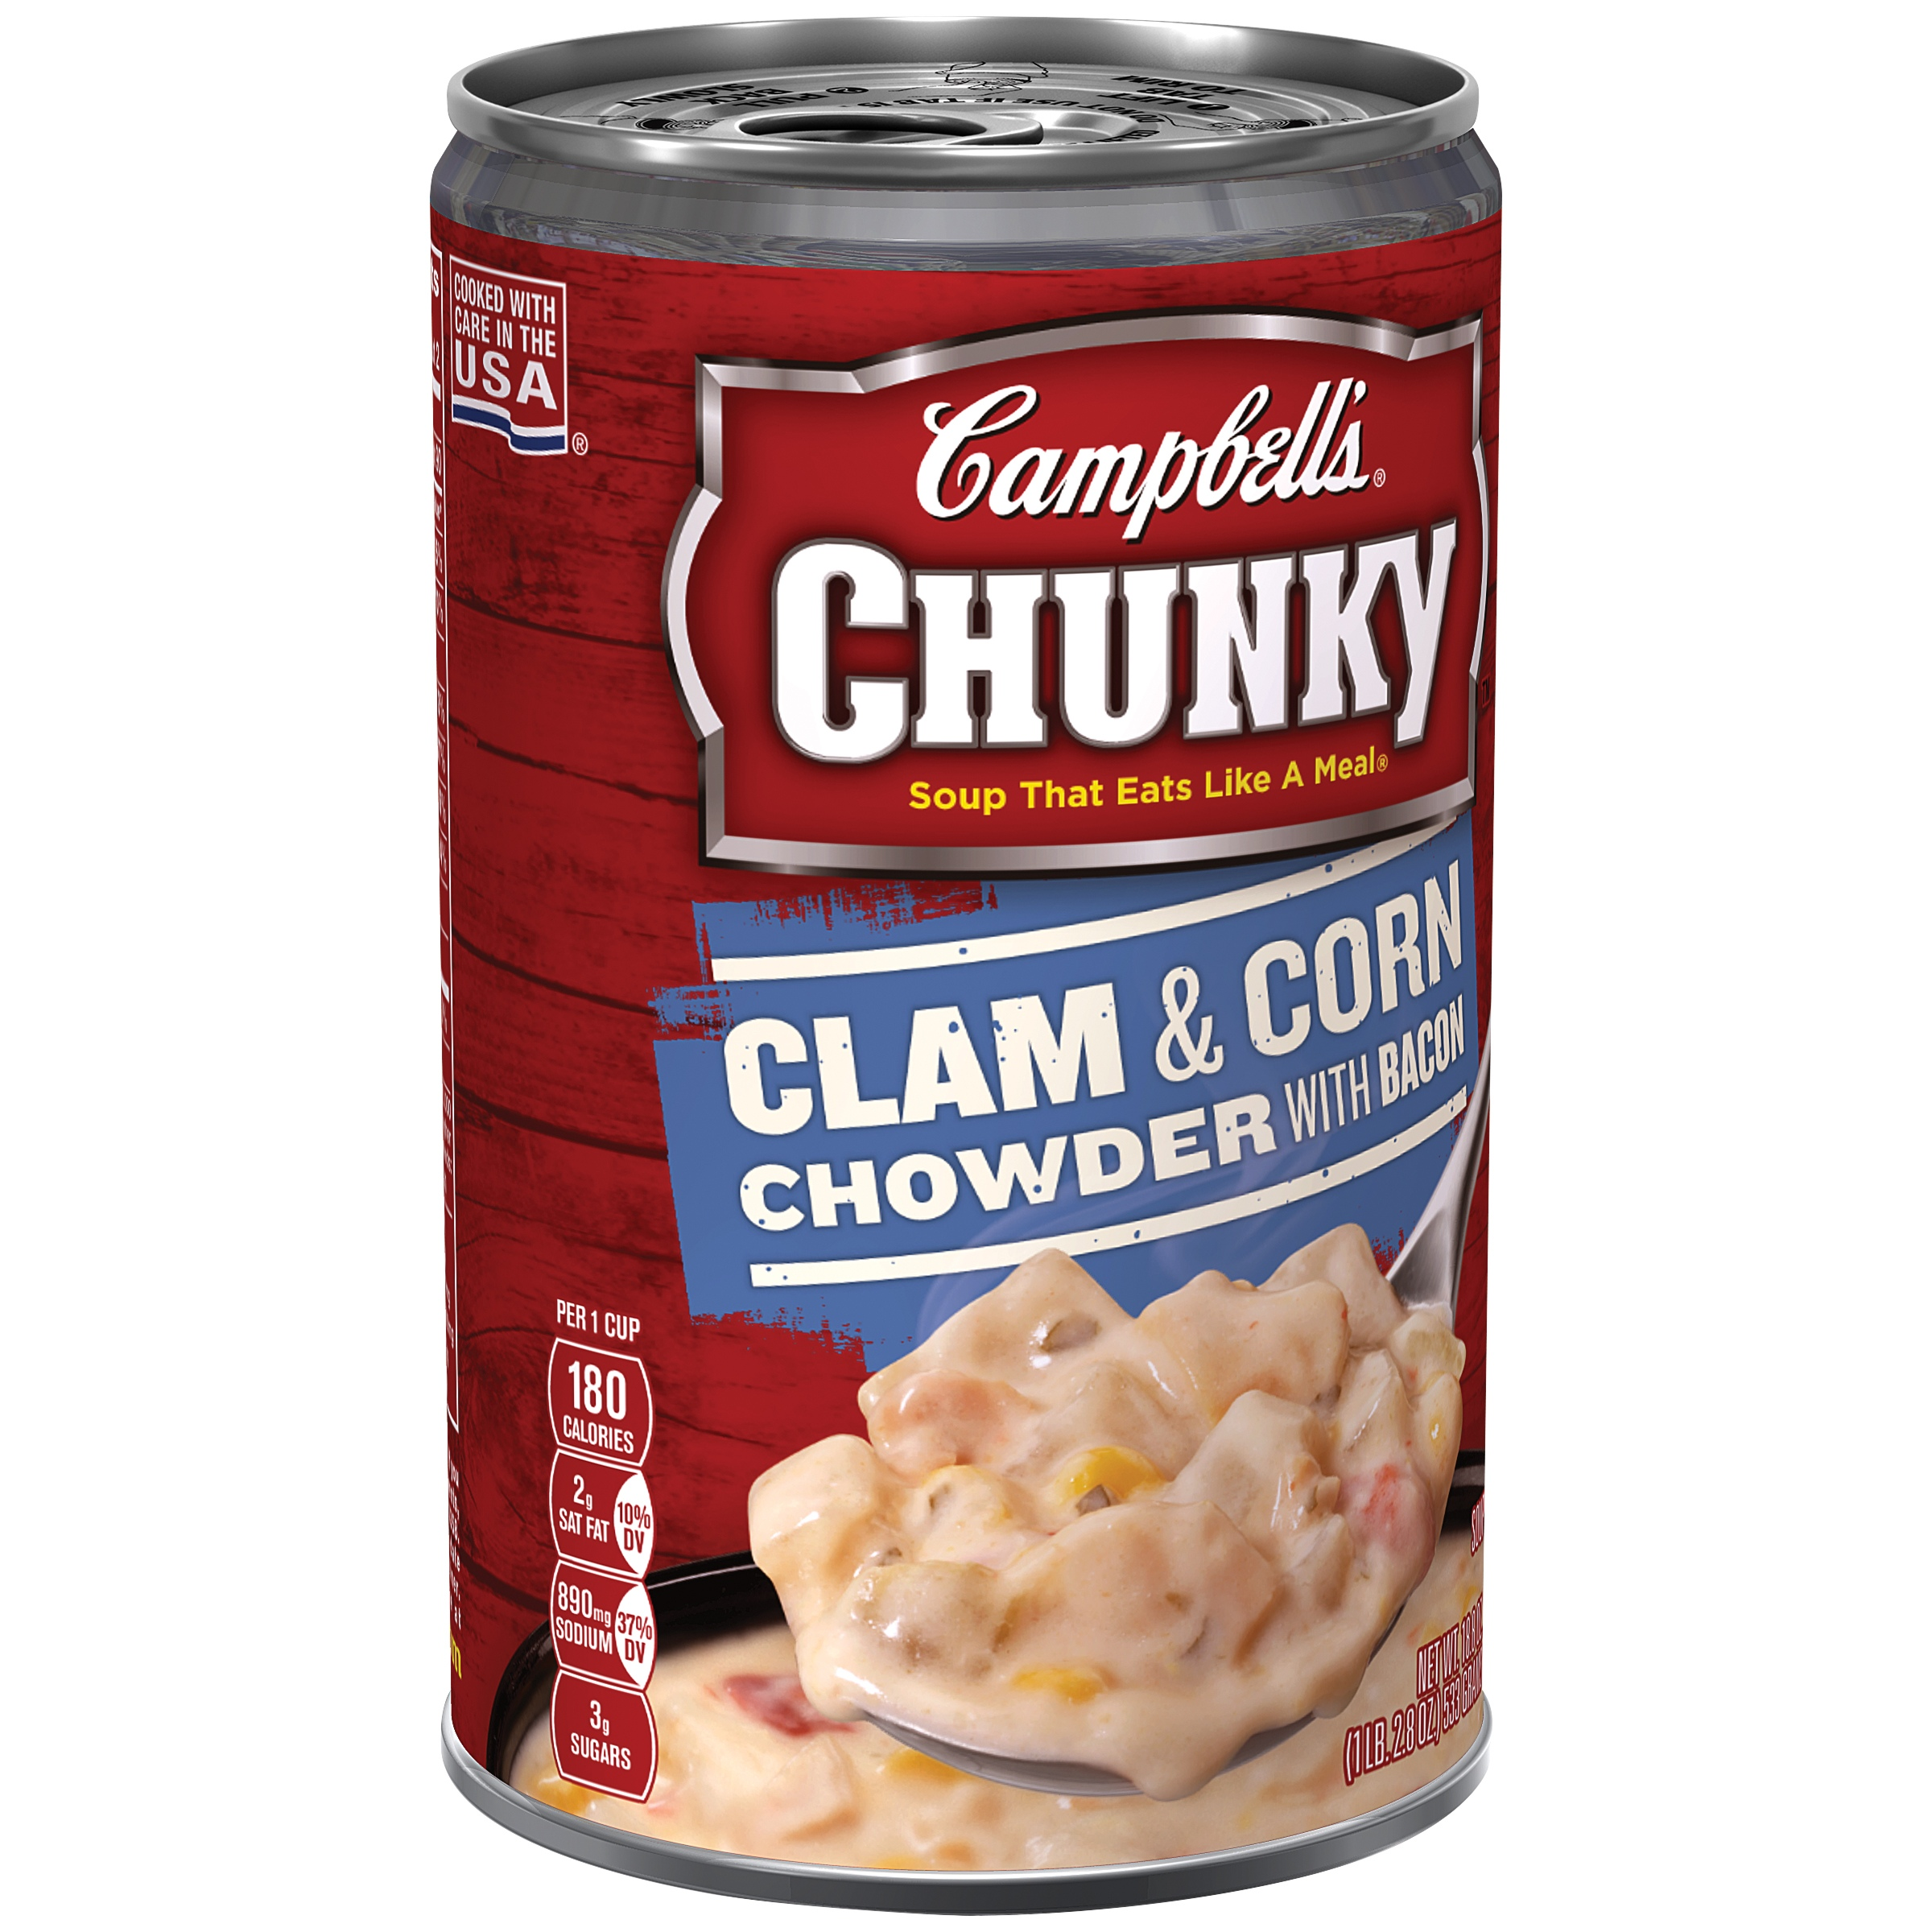 Campbell's Chunky Clam & Corn Chowder with Bacon Soup, 18.8 oz by Campbell Soup Company